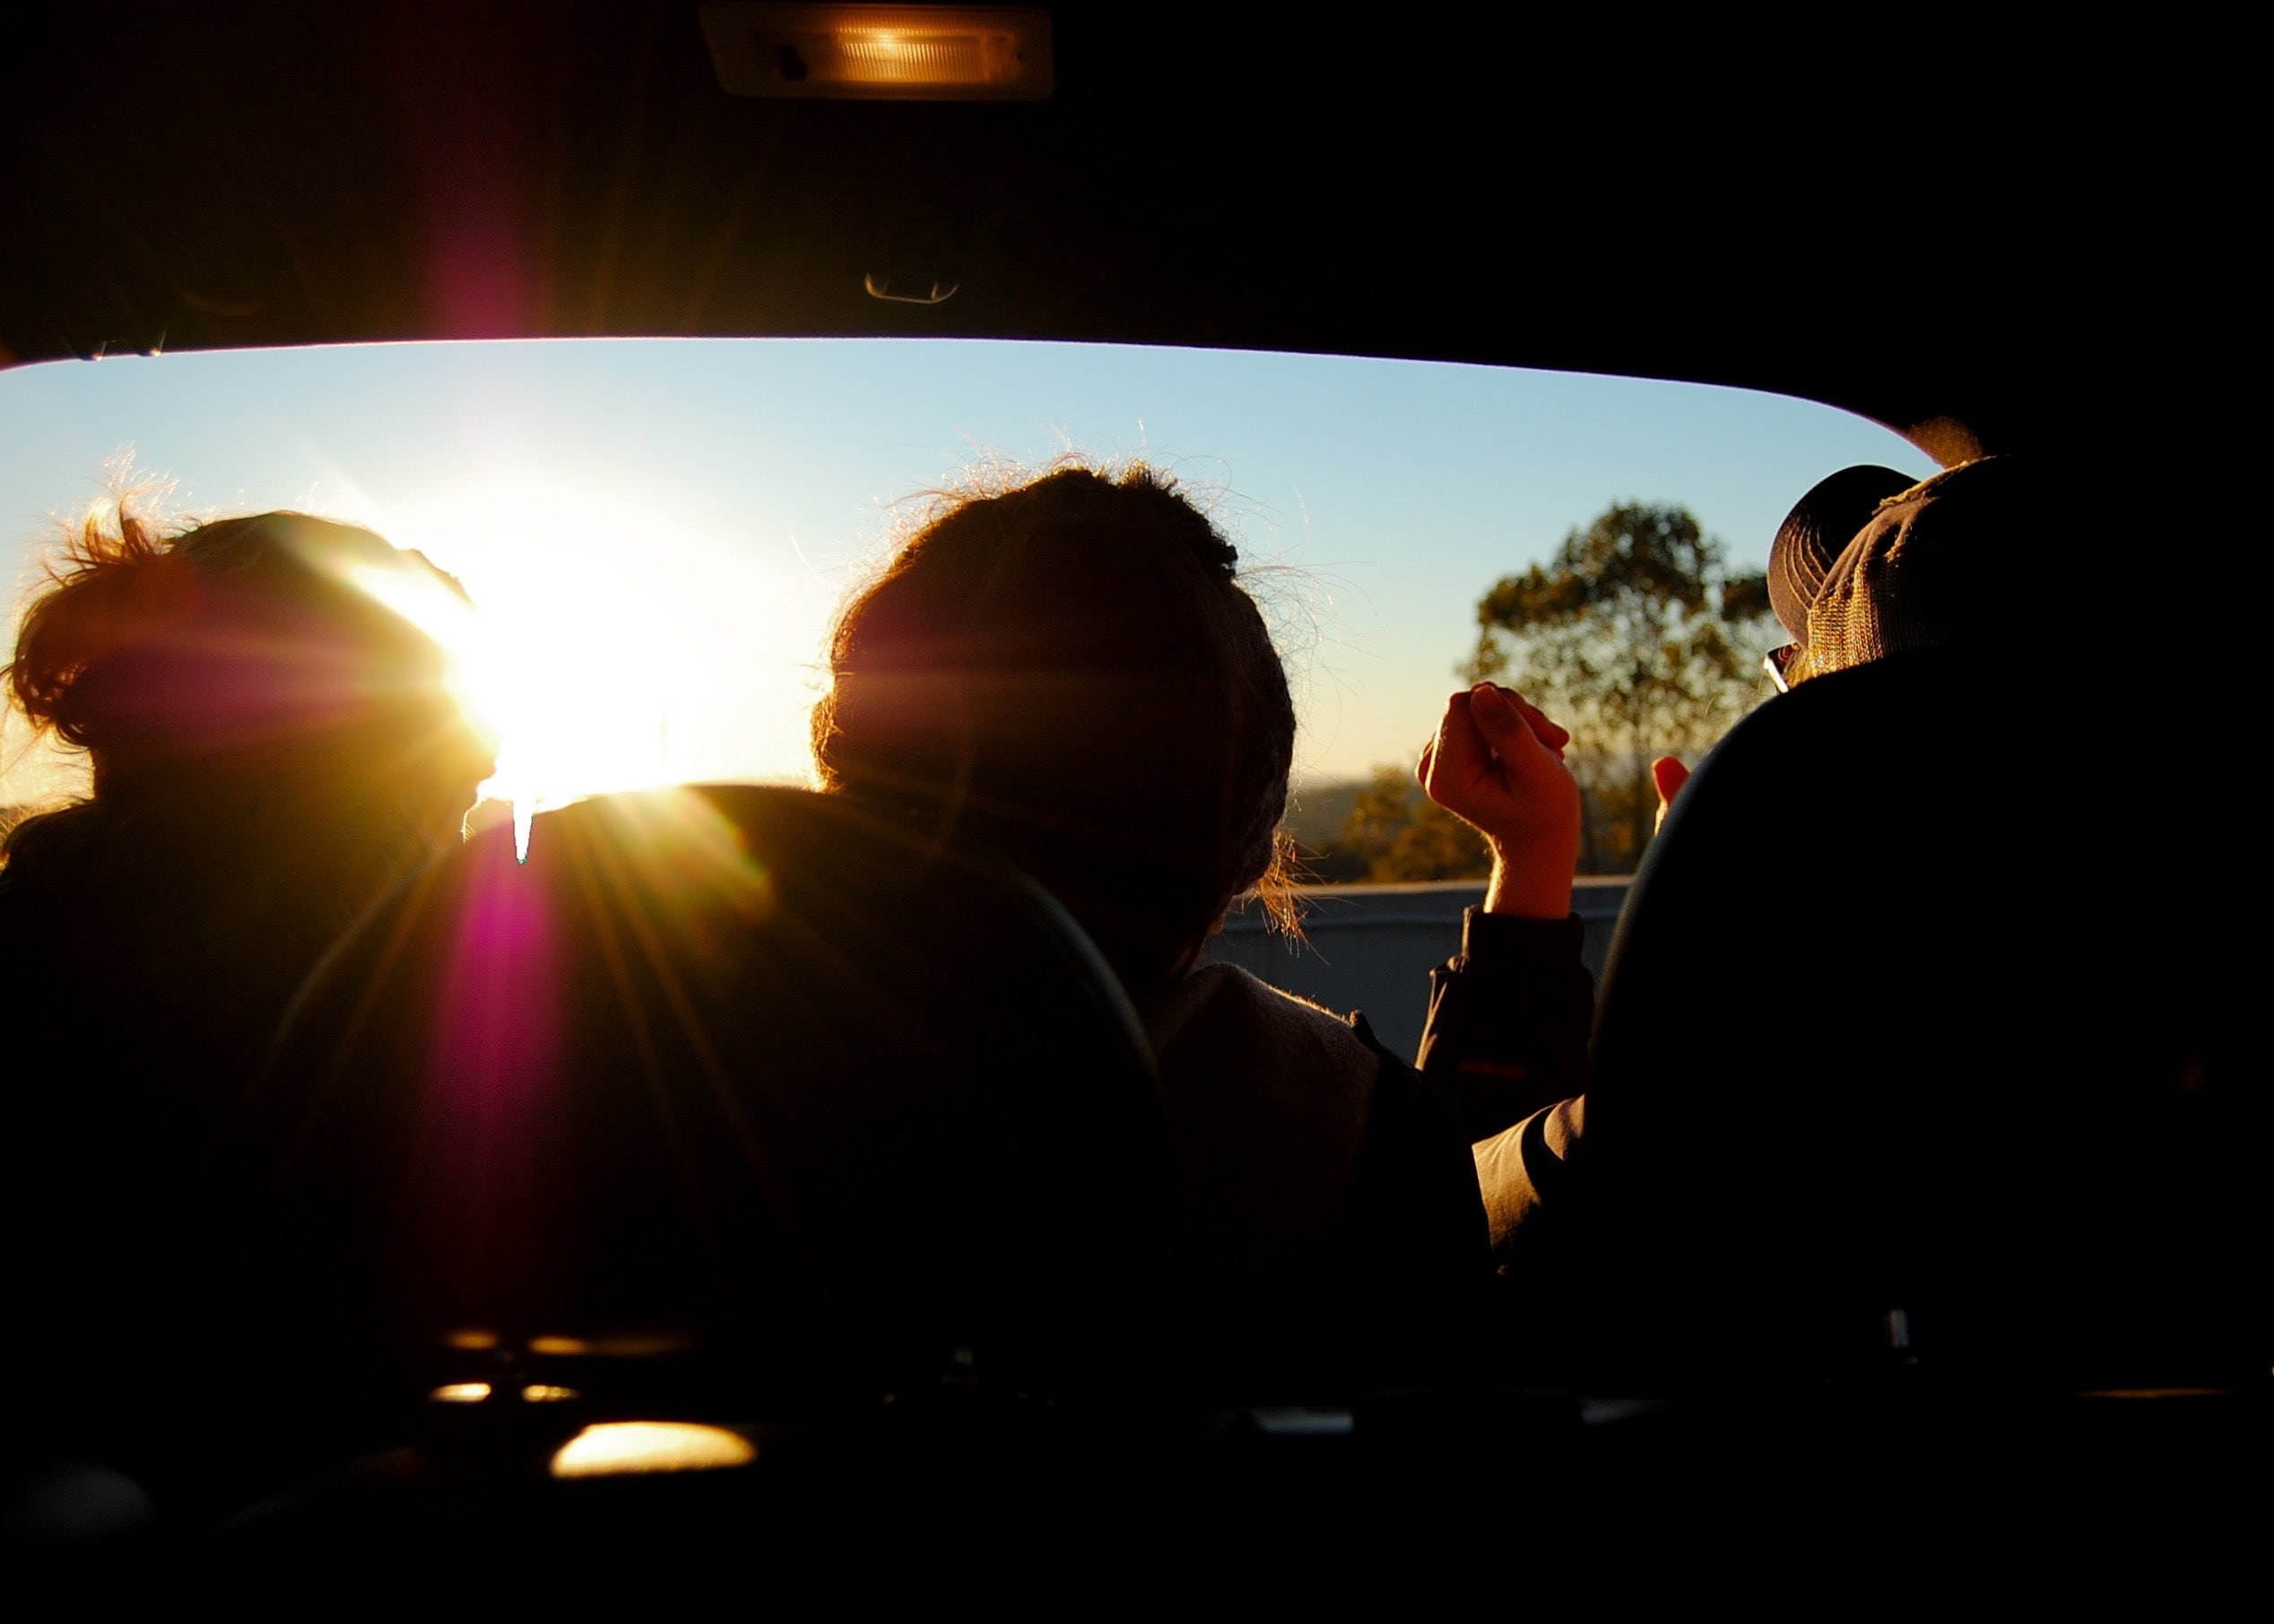 Silhouette of people in the back of a car sitting down enjoying the sun rays